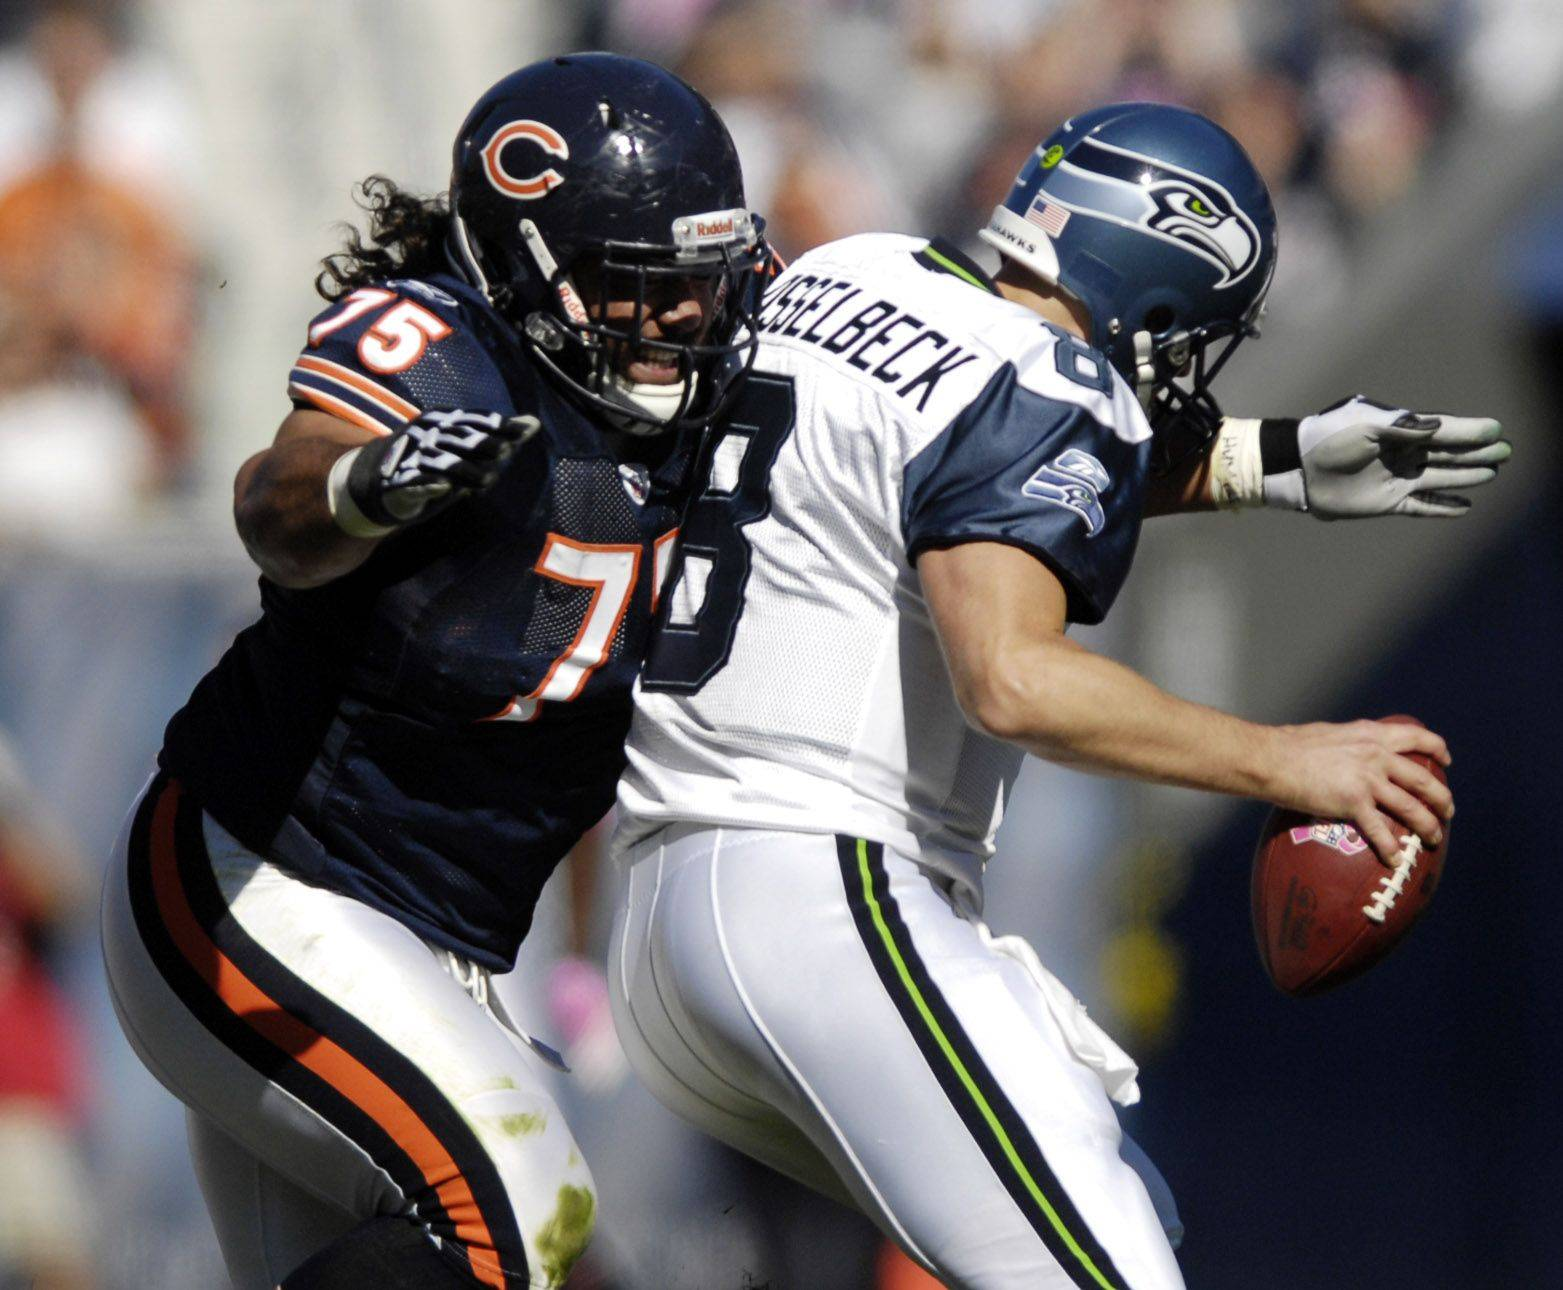 Chicago Bears defensive tackle Matt Toeaina forces Seattle Seahawks quarterback Matt Hasselbeck into an incomplete pass bringing up a 4th down.